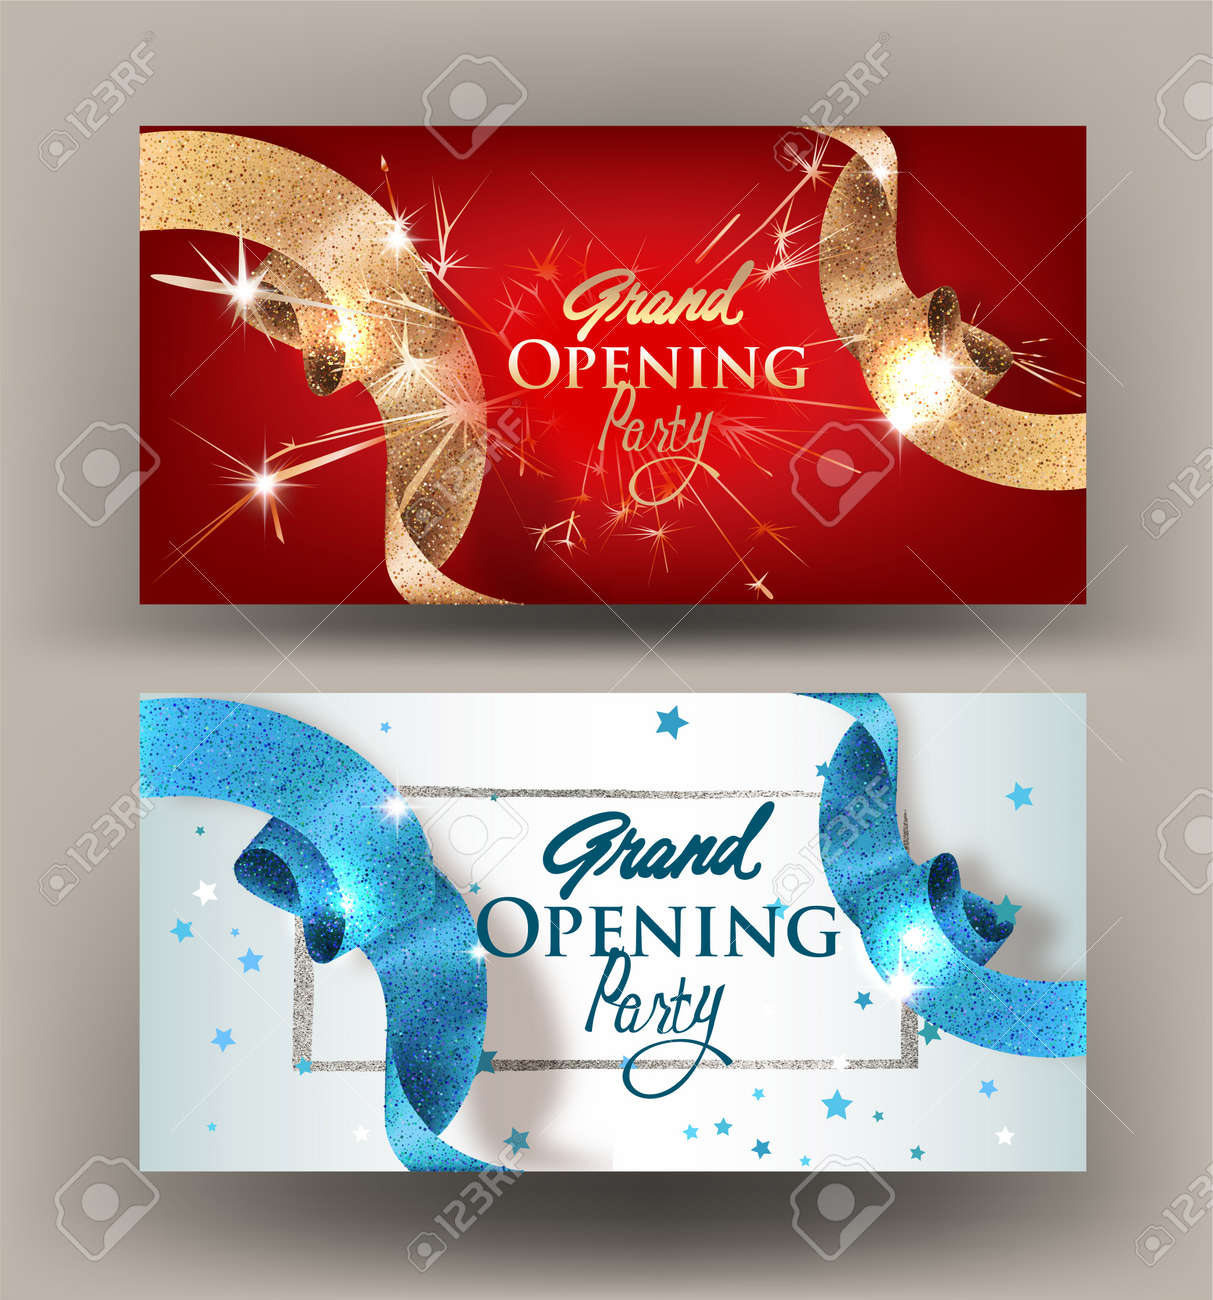 Grand opening banners with sparkling beautiful ribbons. Vector illustration - 88554097